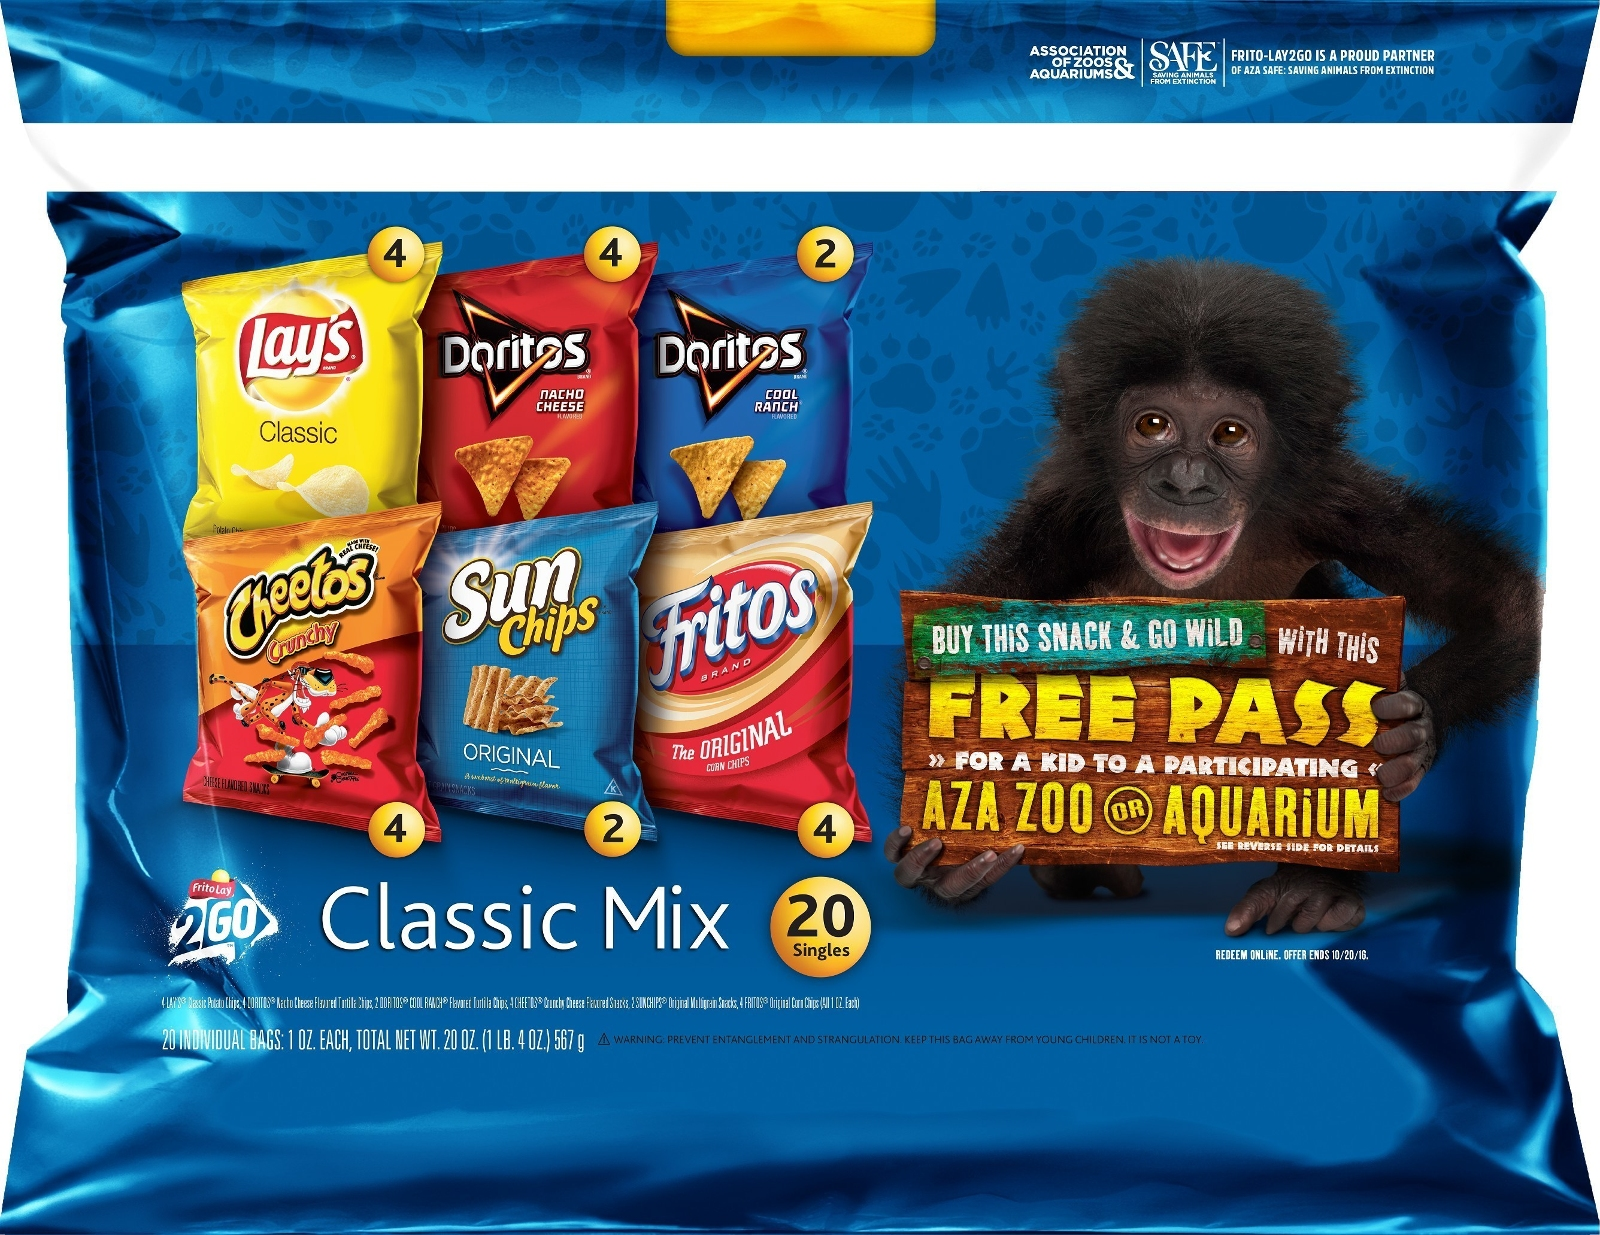 Image of Frito-Lay Classic Mix Variety Pack with SAFE logo and free pass to AZA facility logo